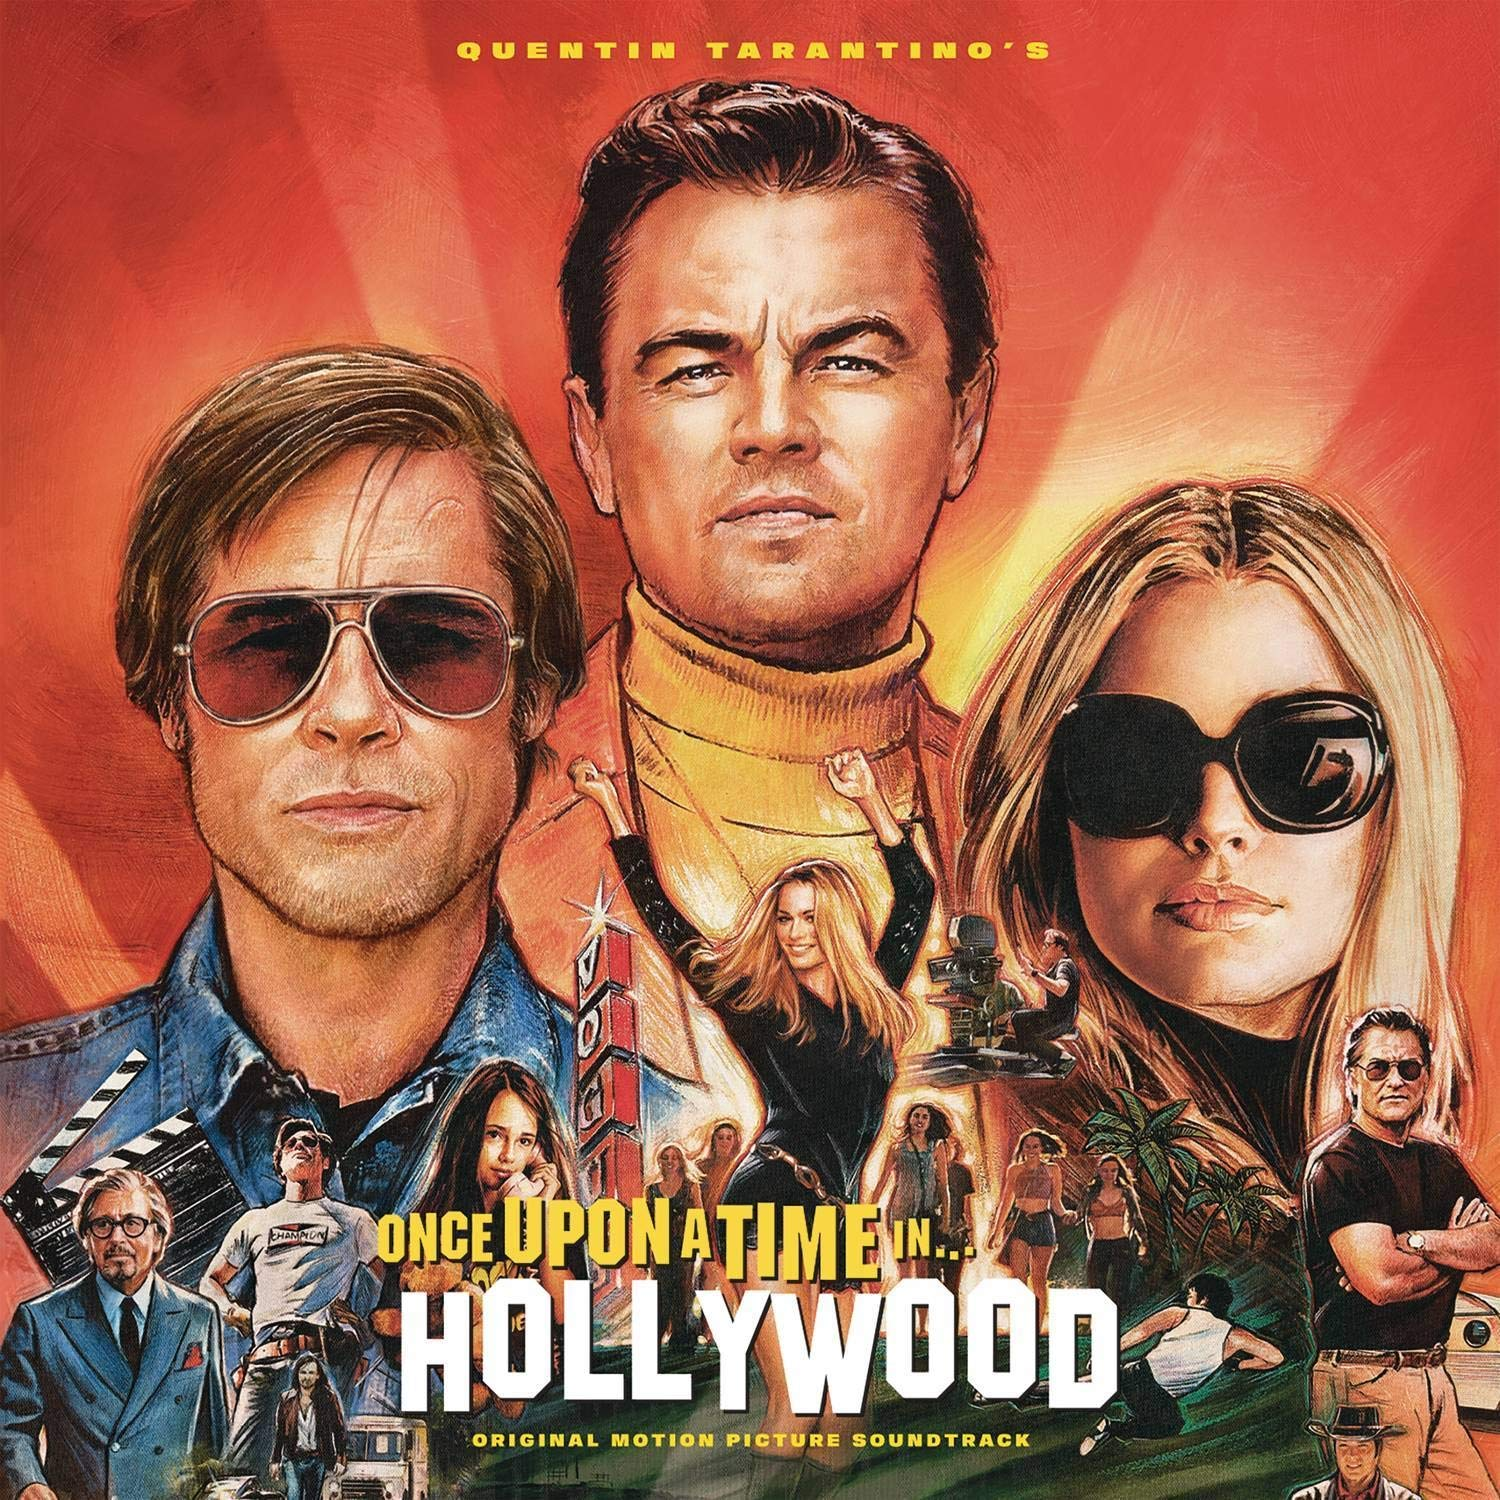 Quentin Tarantino's Once Upon a Time in Hollywood Original Motion Picture Soundtrack by COLUMBIA RECORDS GROUP